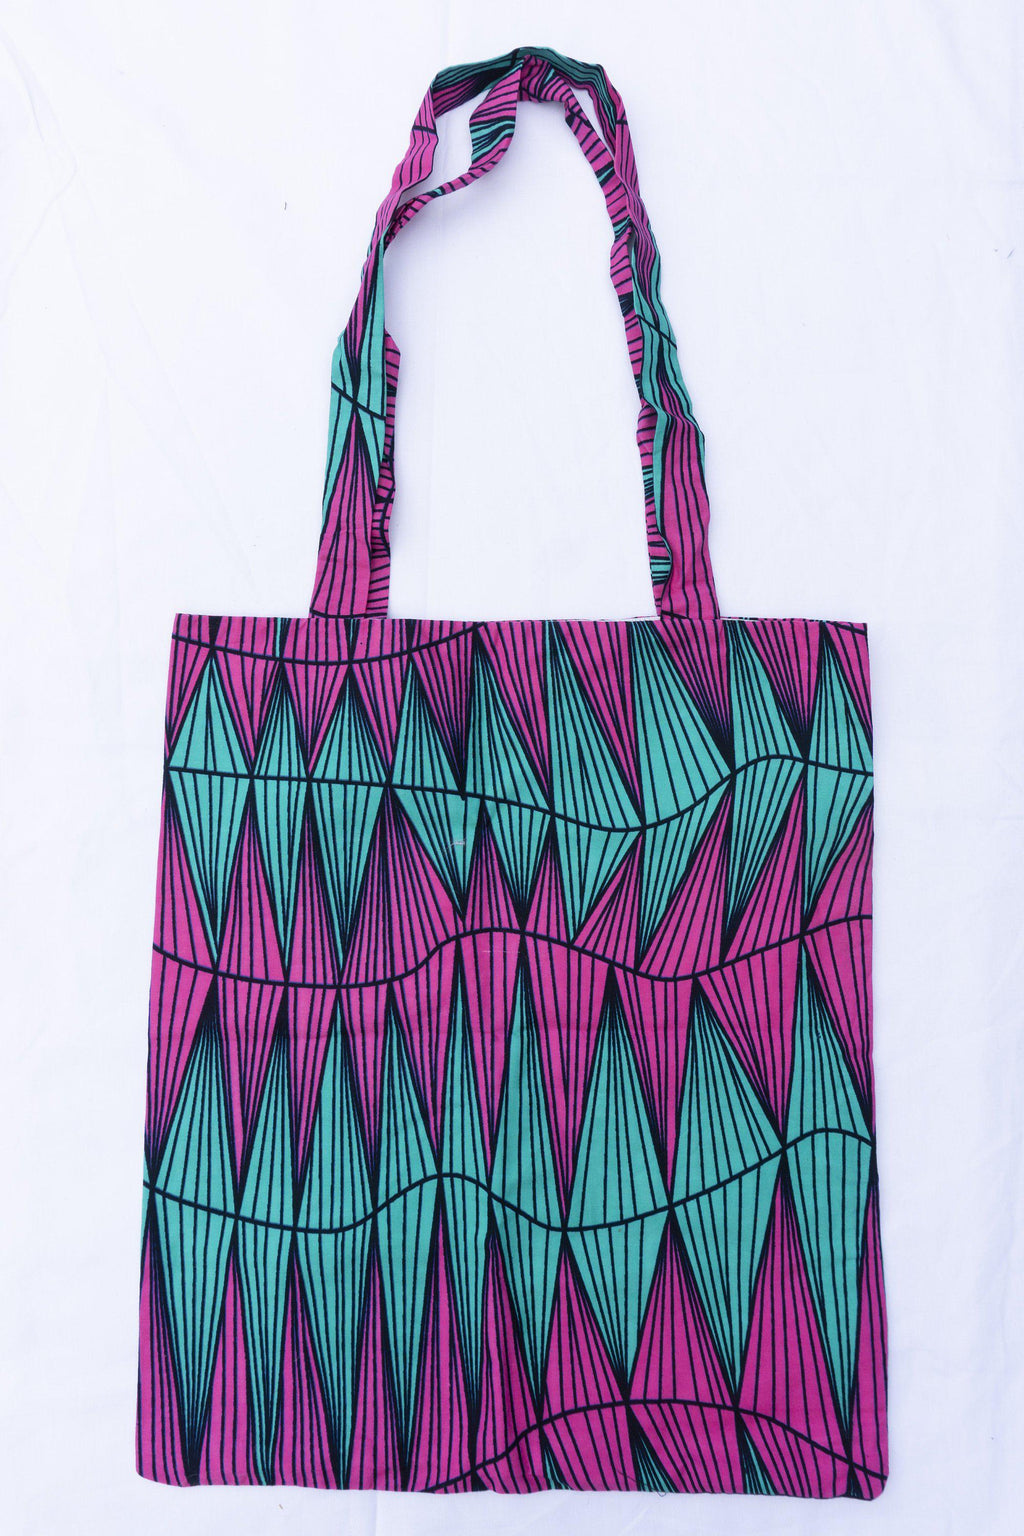 Zig Zag Tote Bag / African print tote bag / African bag / Shopping bag / Bag for life / Book bag